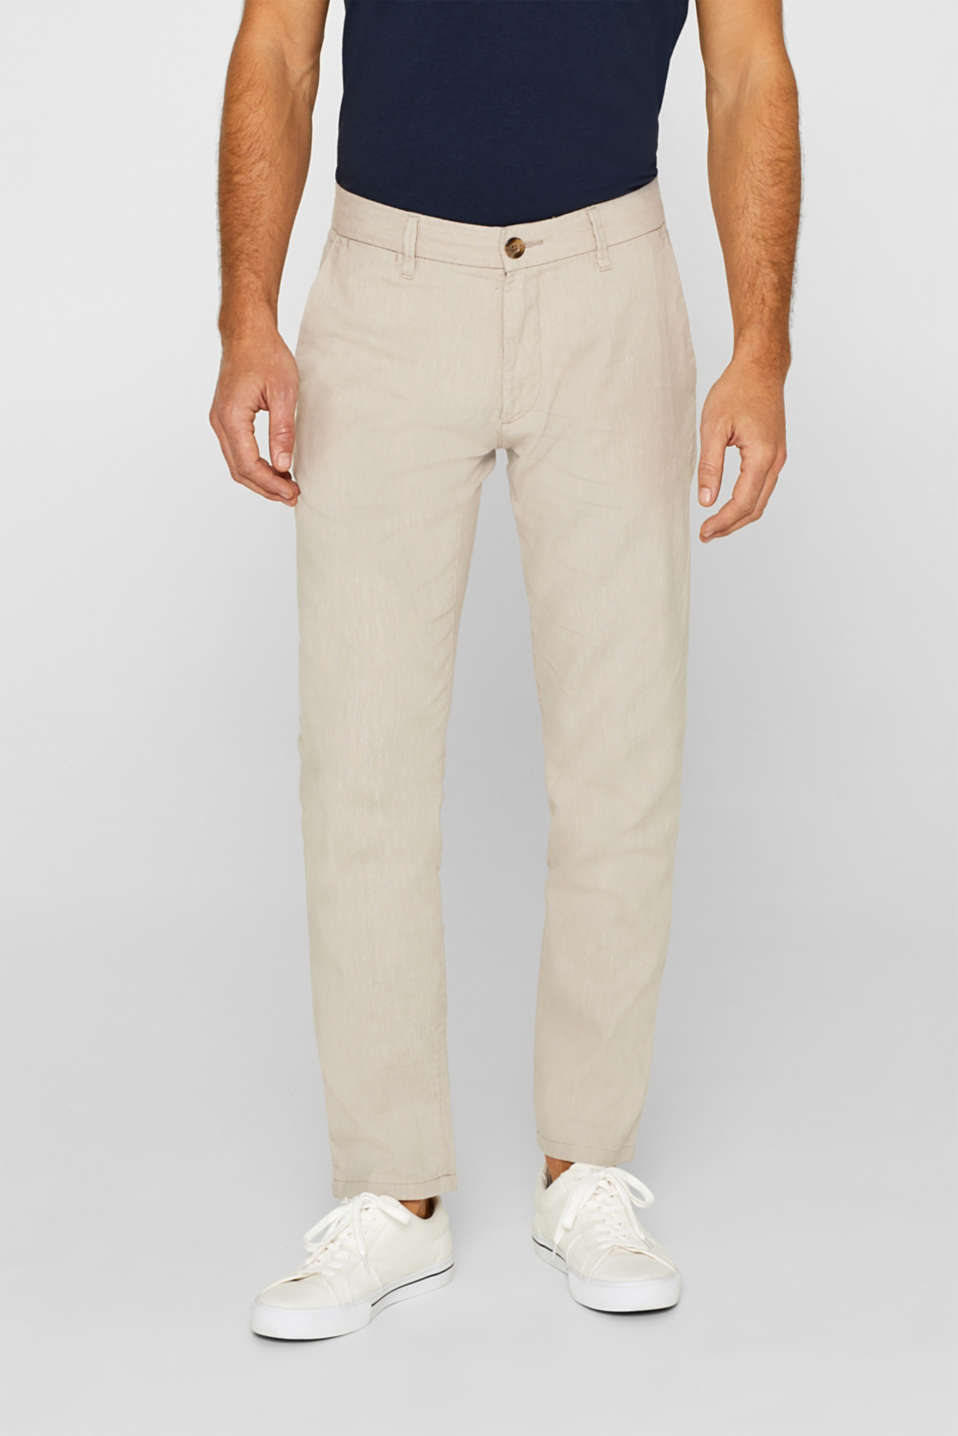 Esprit - Linen blend: Trousers with stretch for comfort